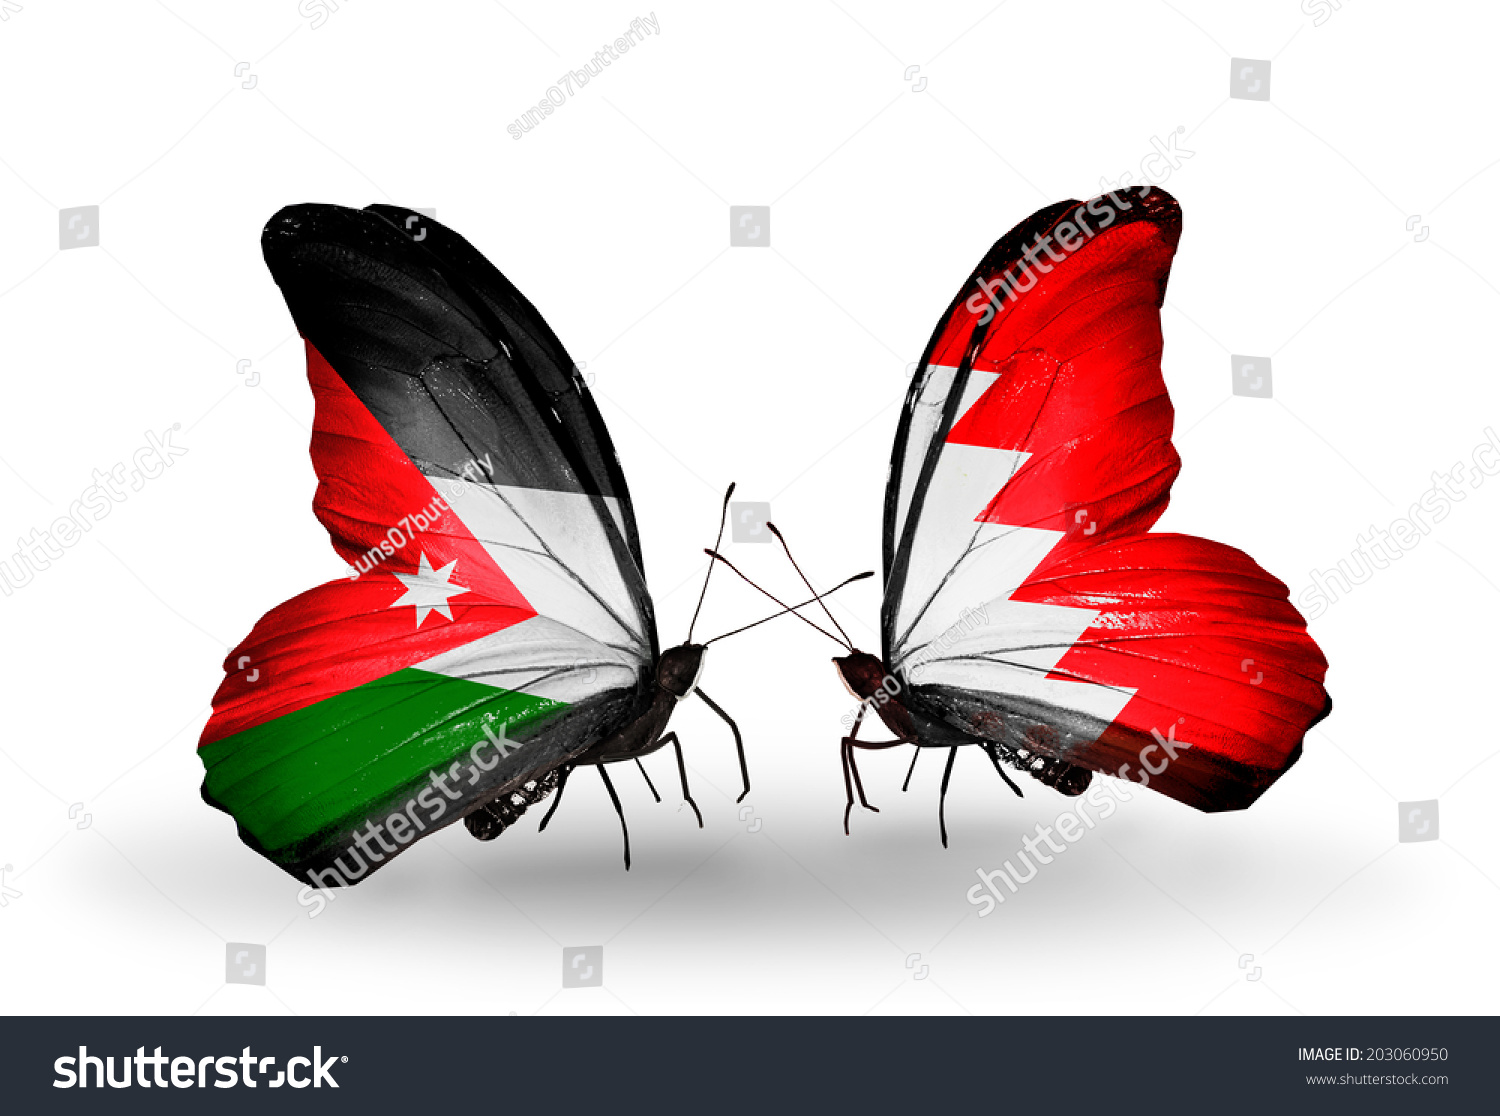 Two butterflies with flags on wings as symbol of relations Jordan and Bahrain